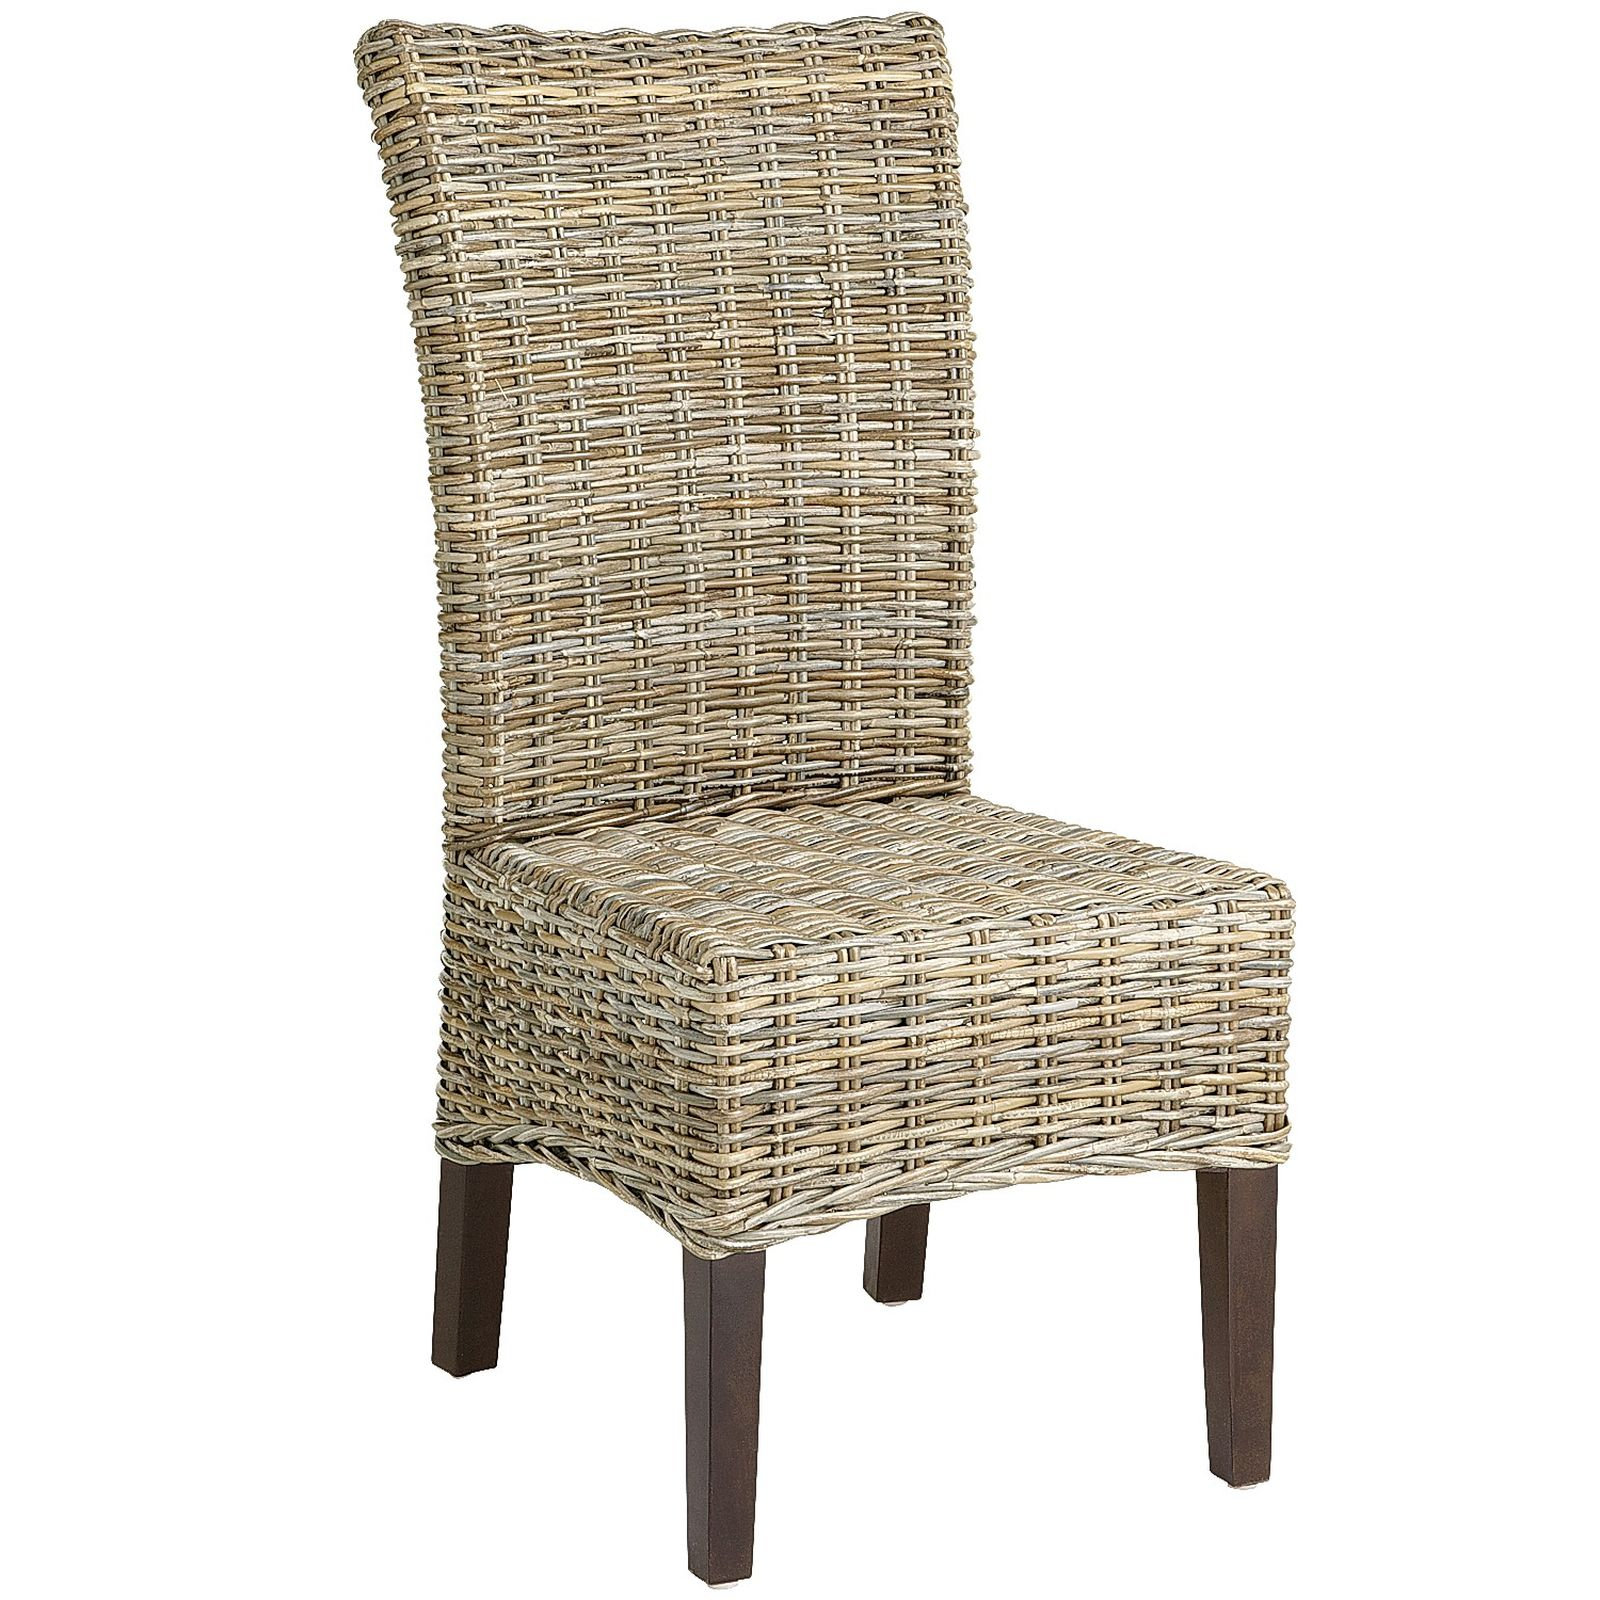 Dining Chair - $119.95